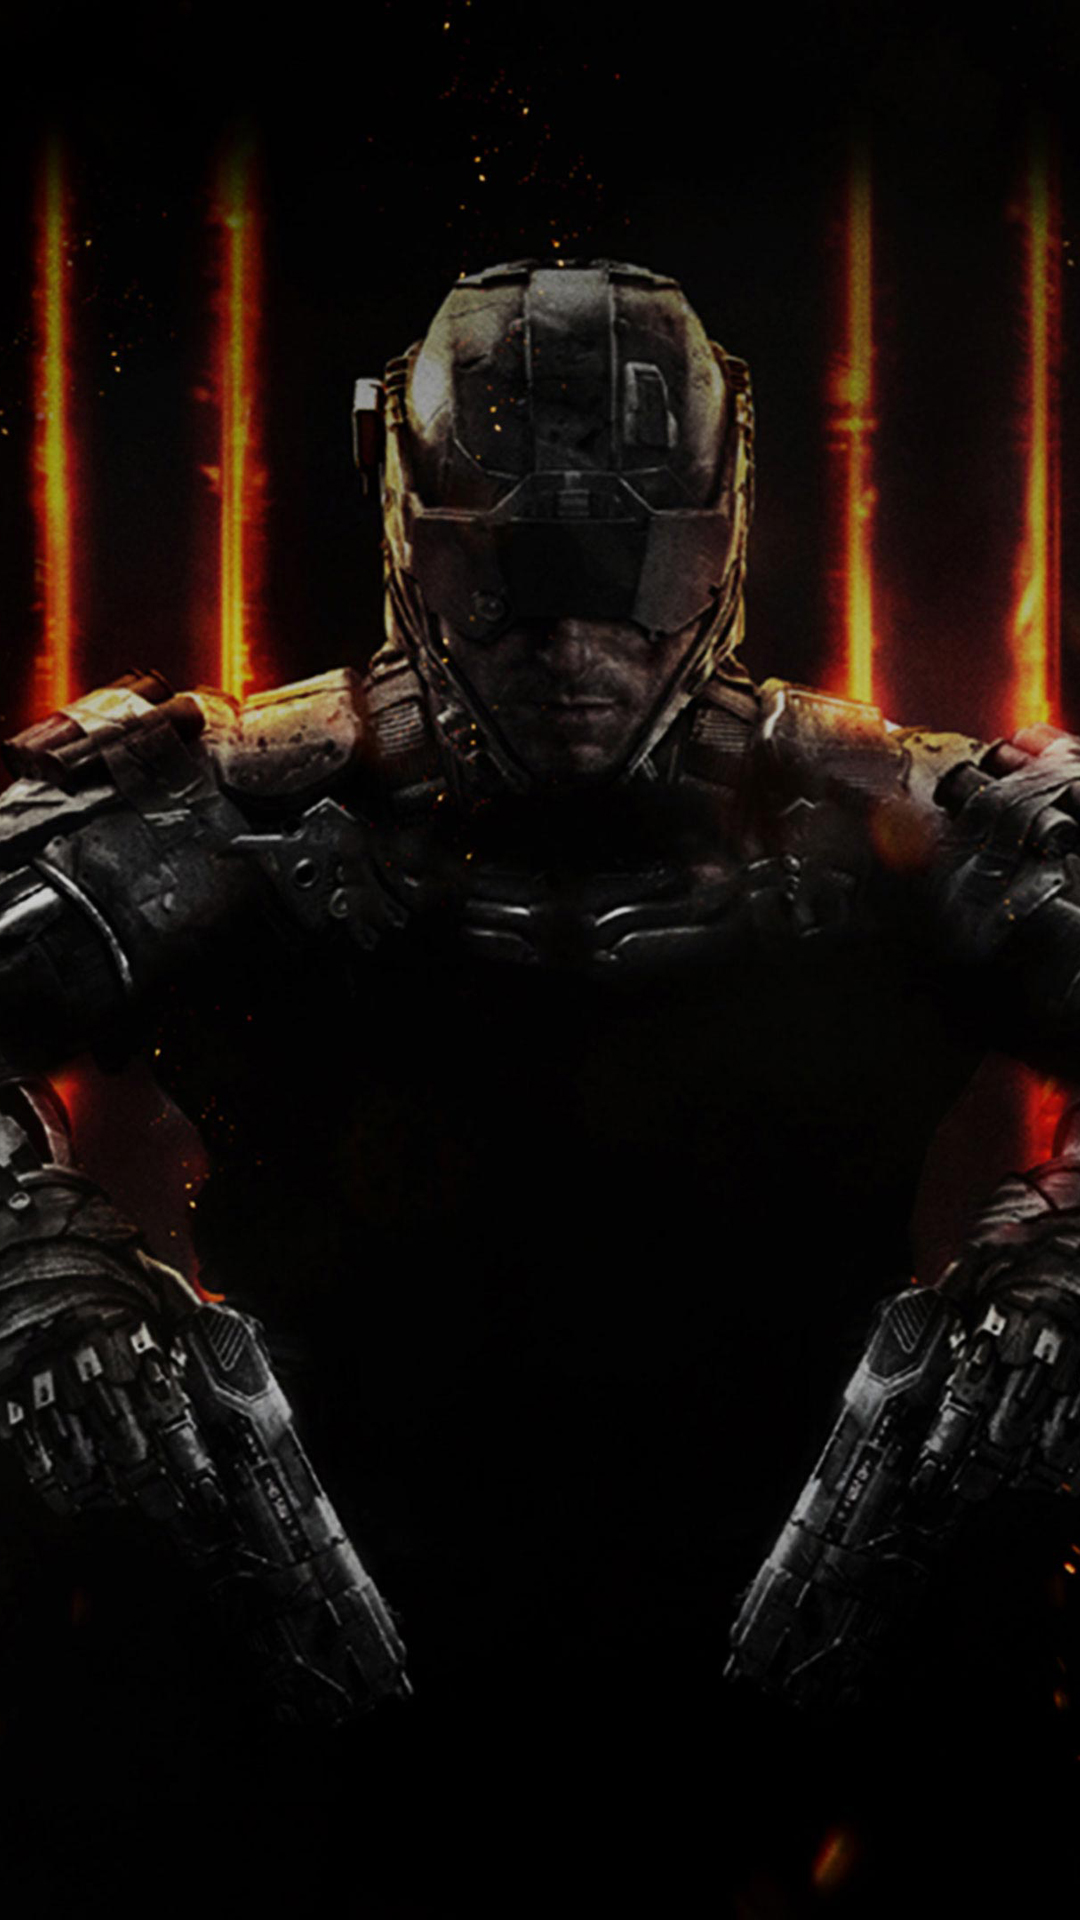 Call Of Duty Black Ops 2 Wallpaper Your Geeky Wallpapers